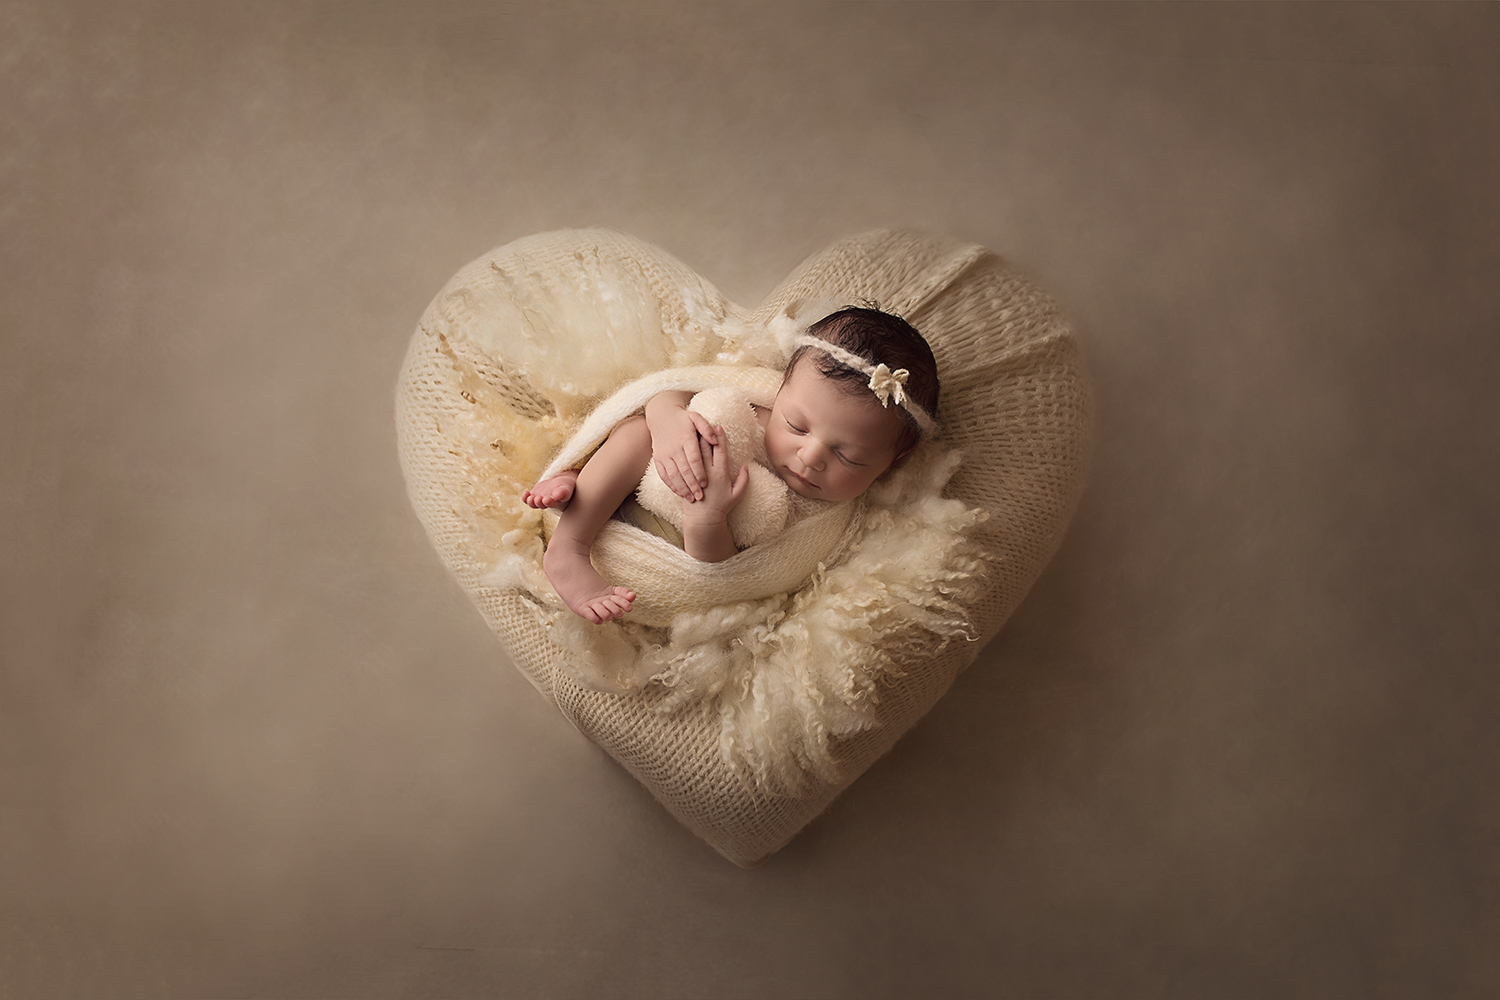 Fort Benning Ga Newborn Photographer Columbus ga newborn photographer cream heart shot from above